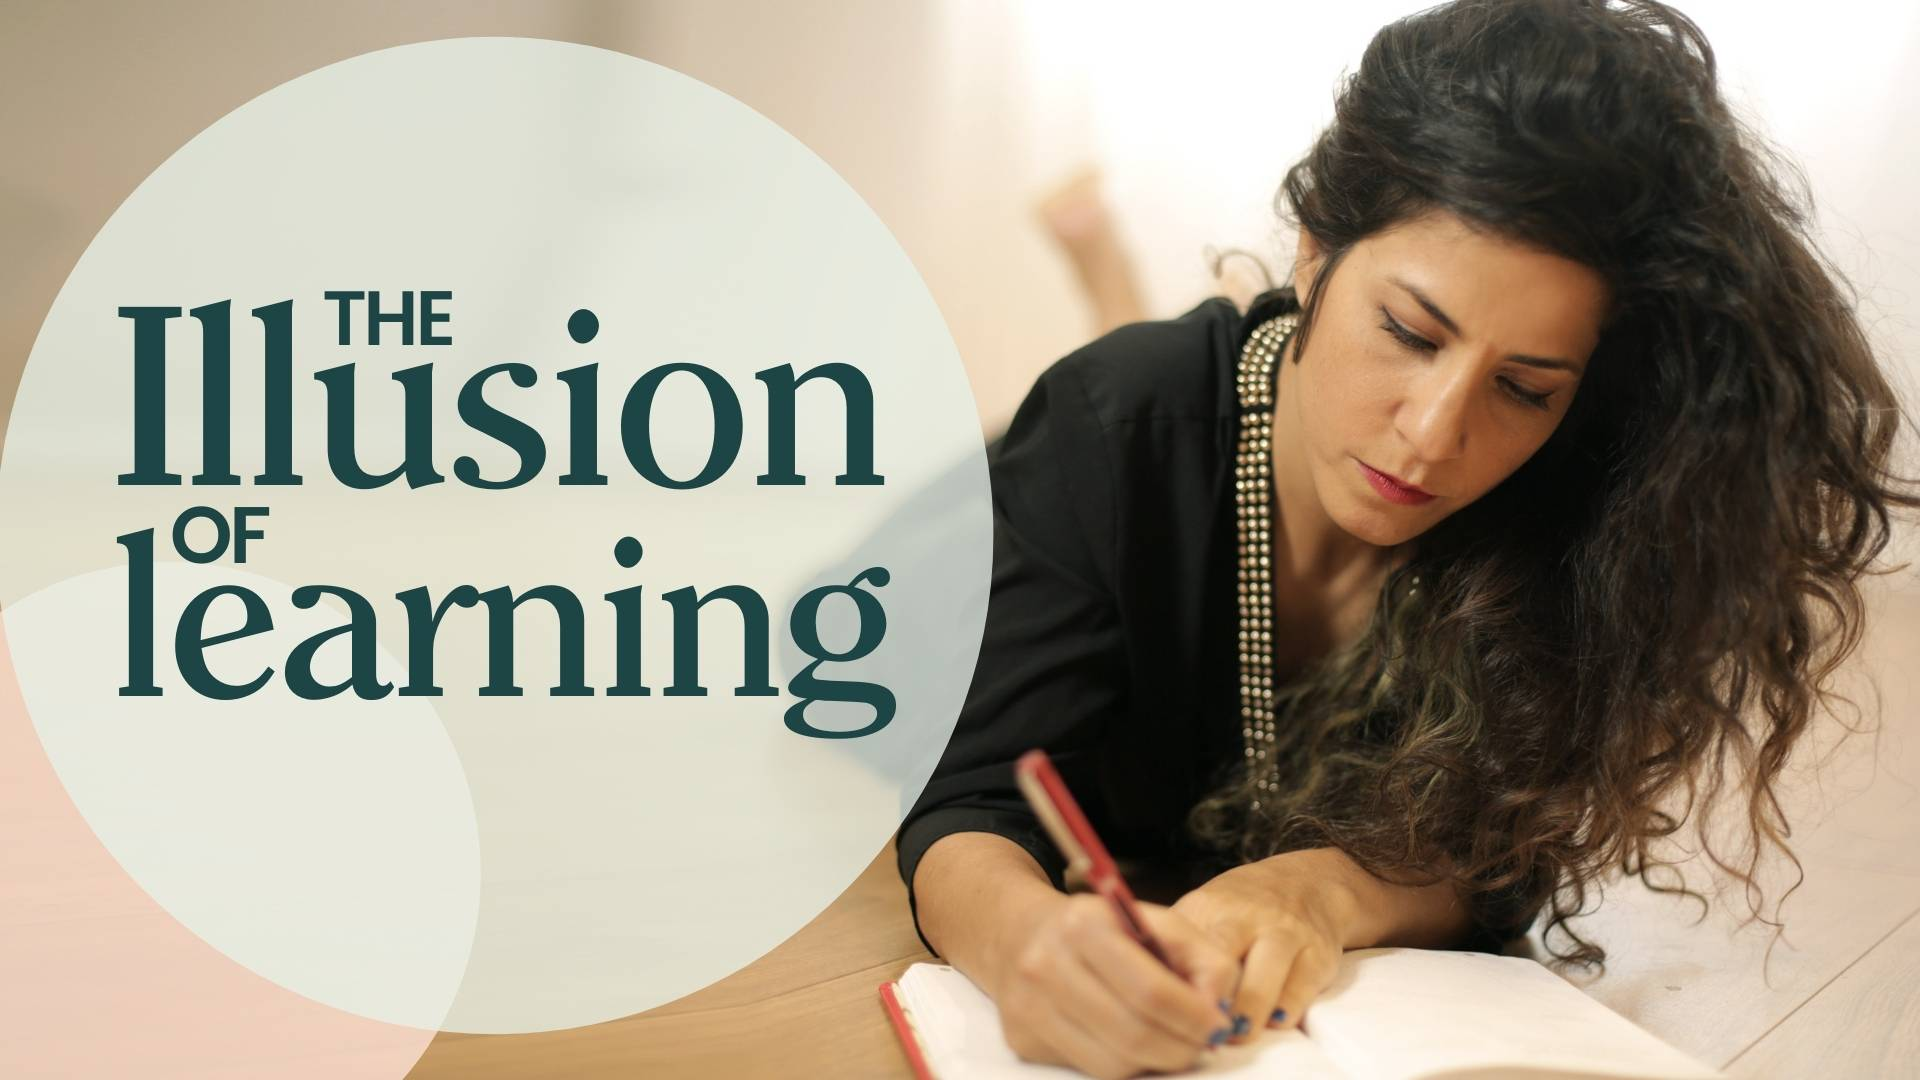 The illussion of learning English